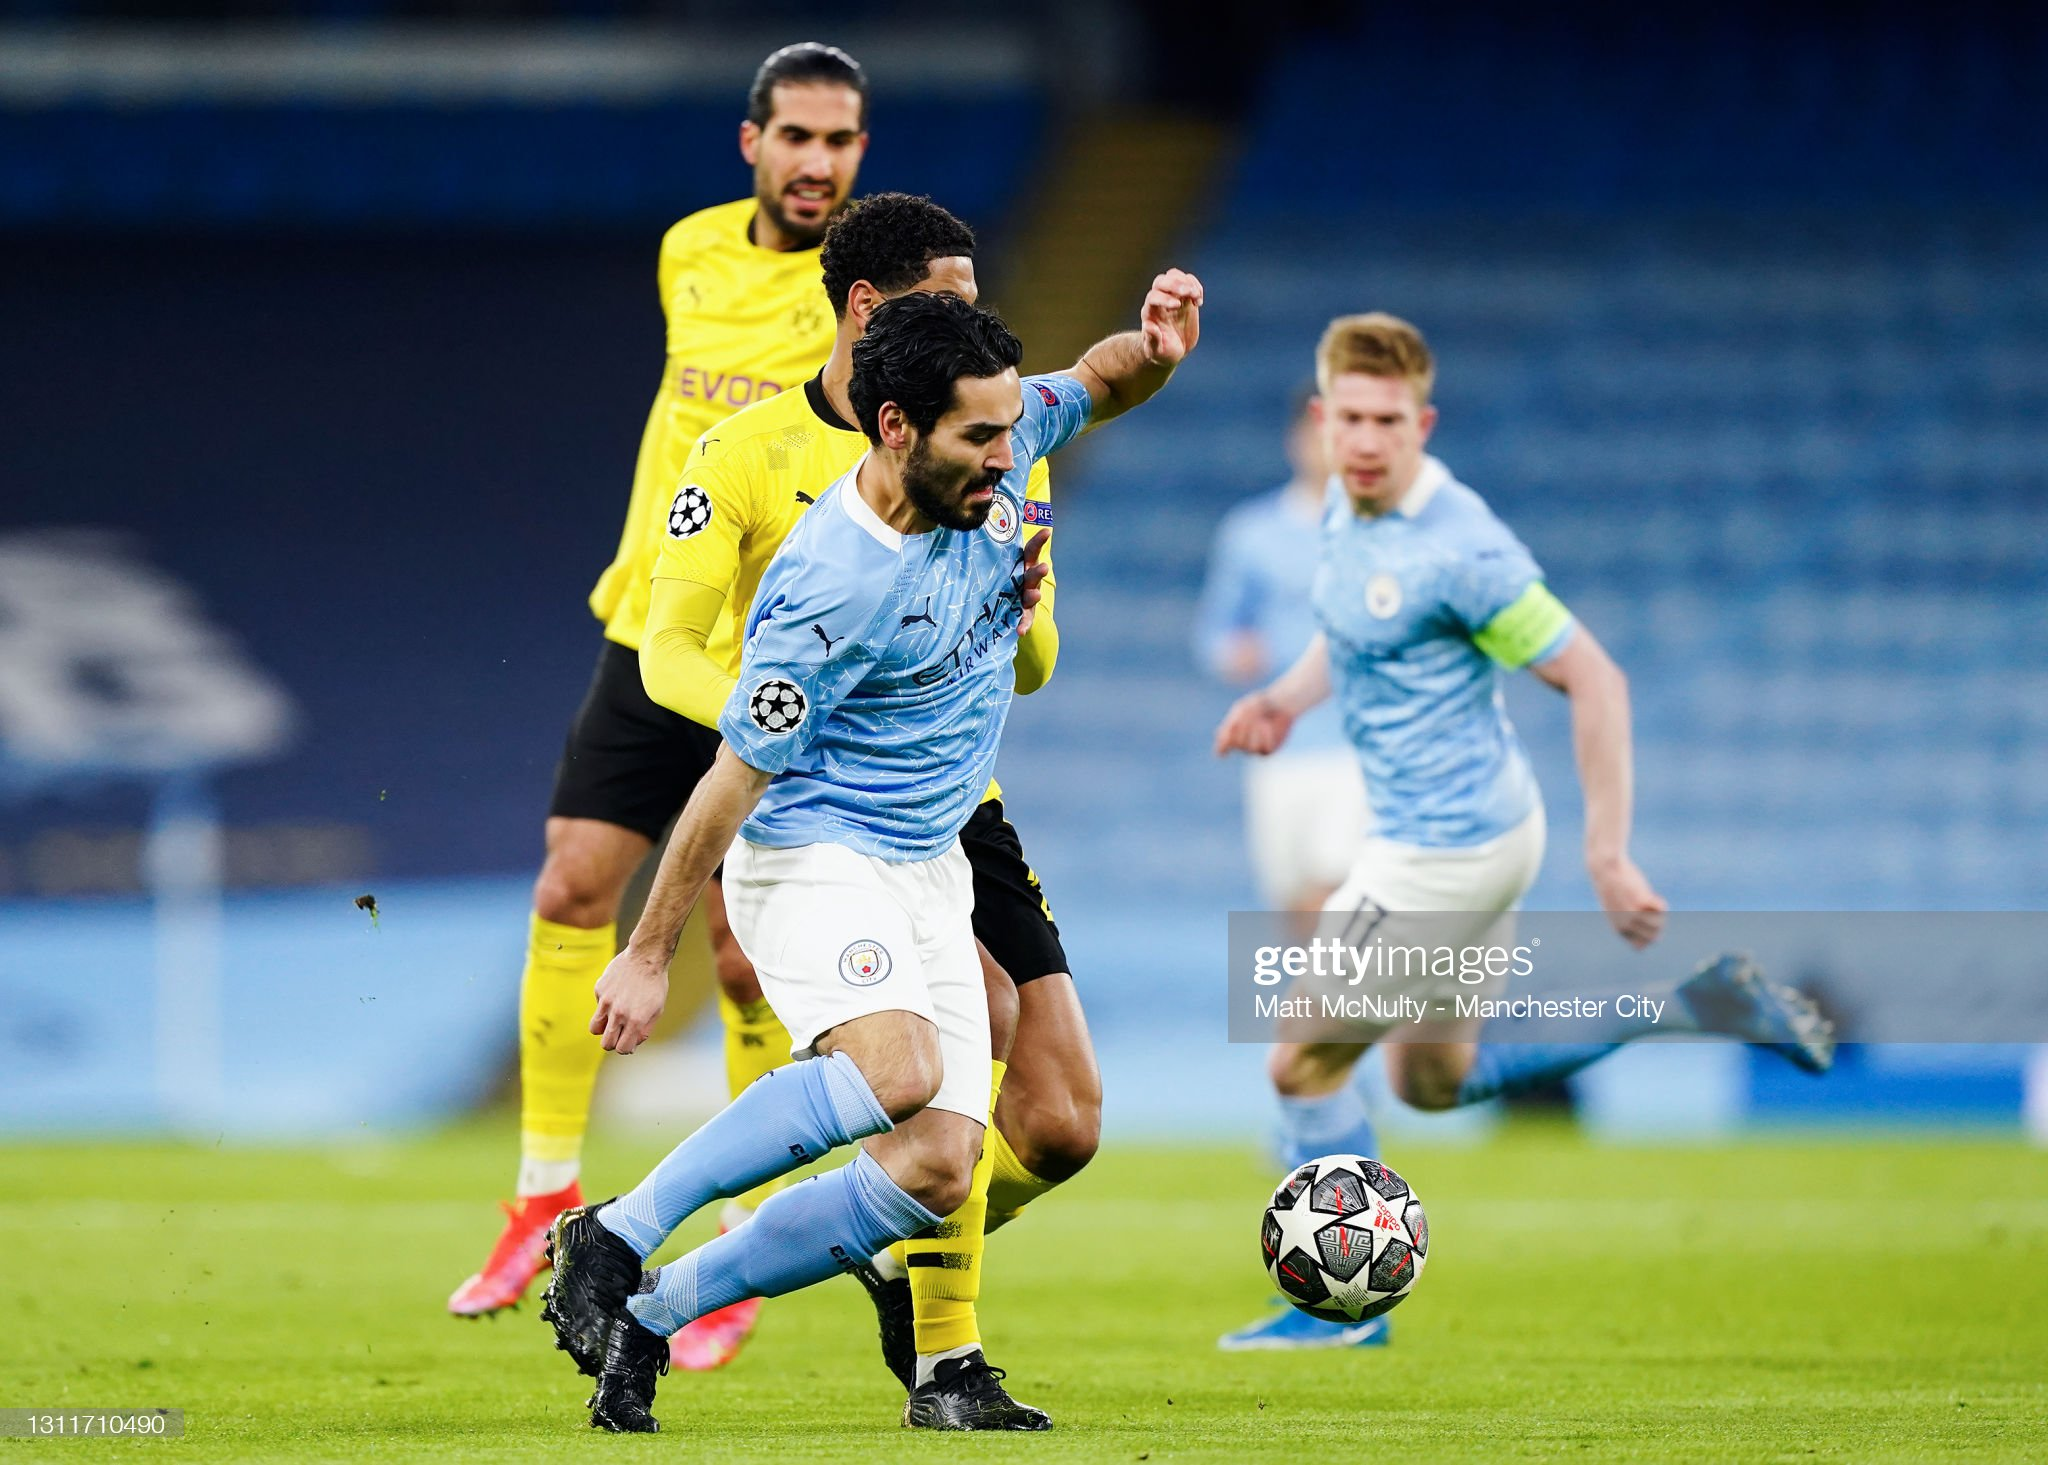 Dortmund vs Manchester City Preview, prediction and odds